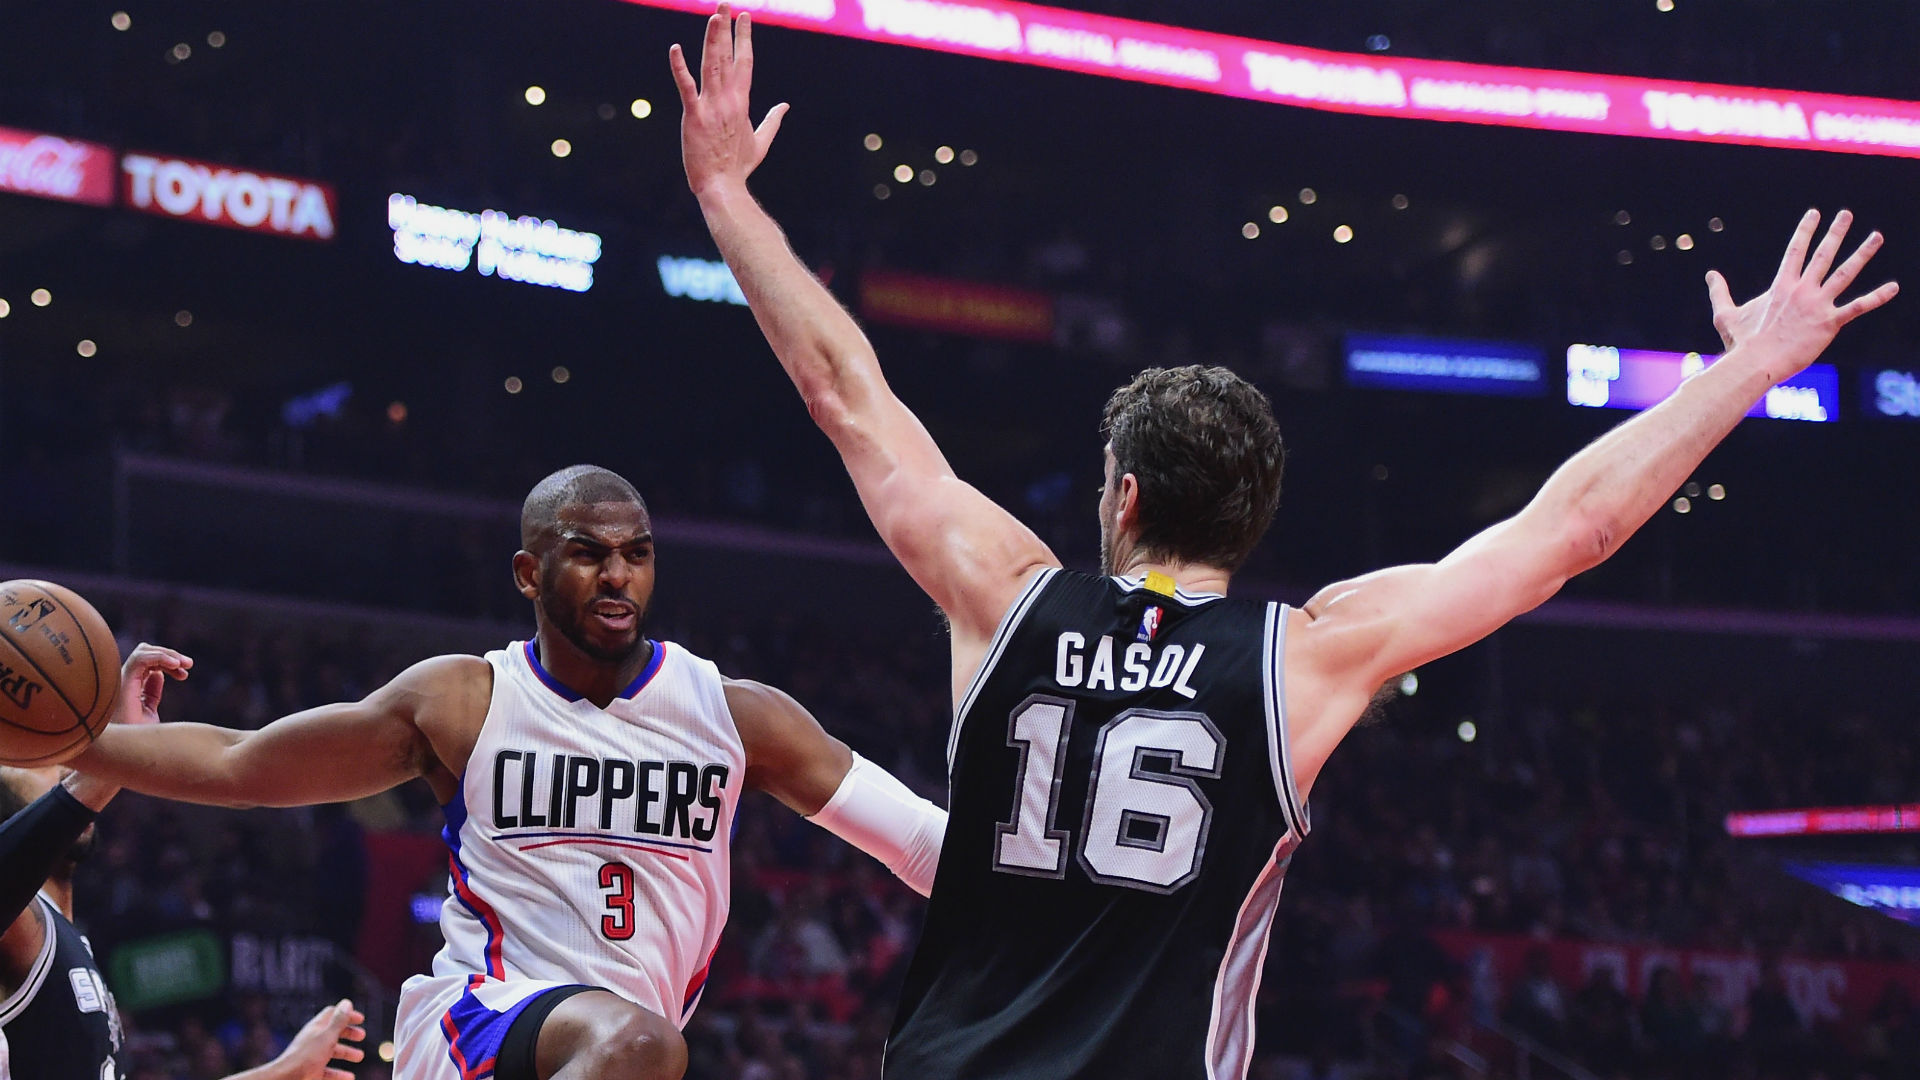 Gasol opting out, re-sign with Spurs